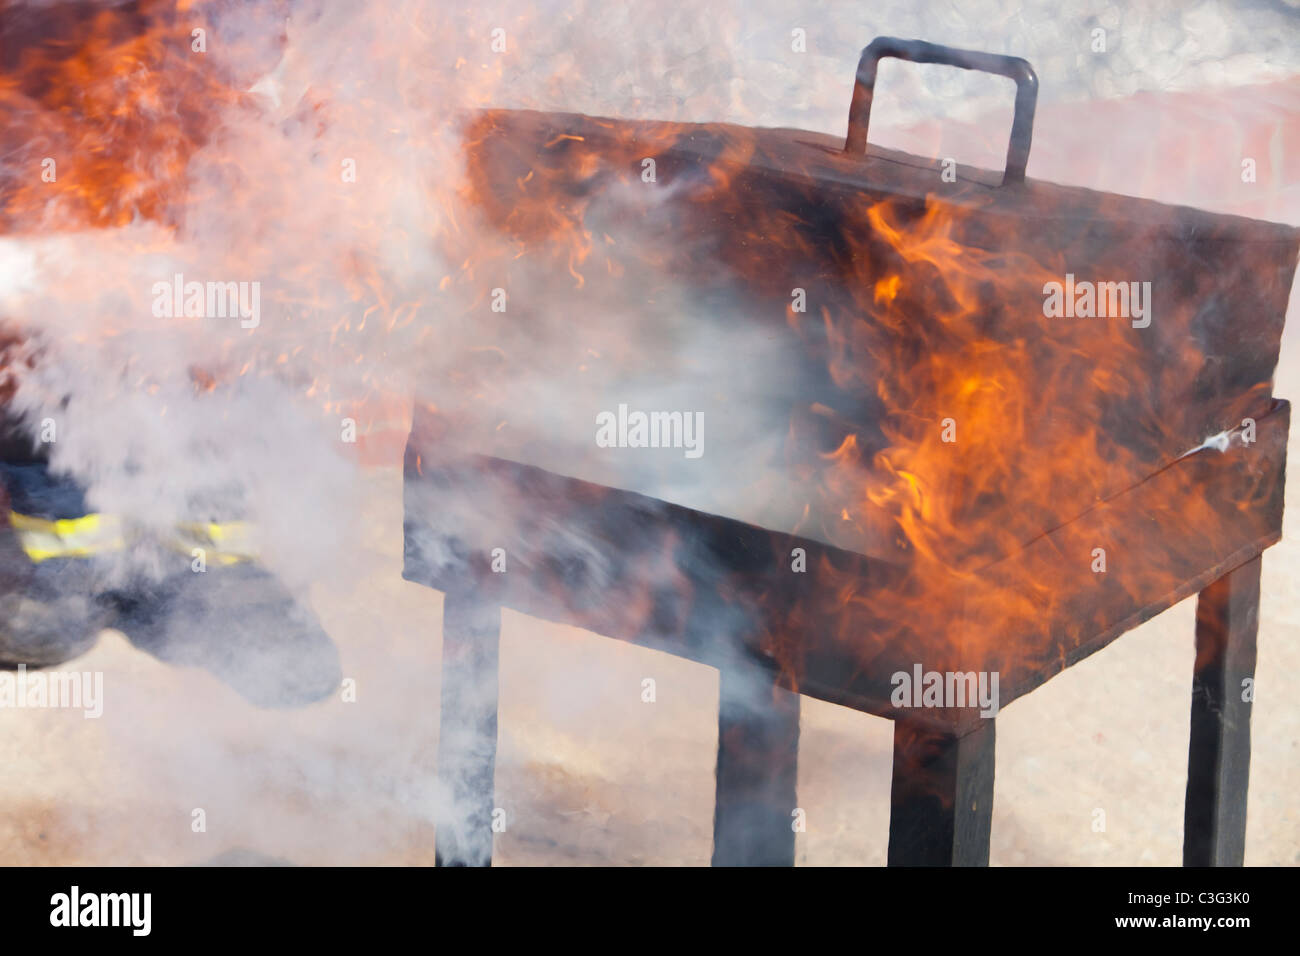 Fighting a fire with a C02 fire extinguisher. - Stock Image